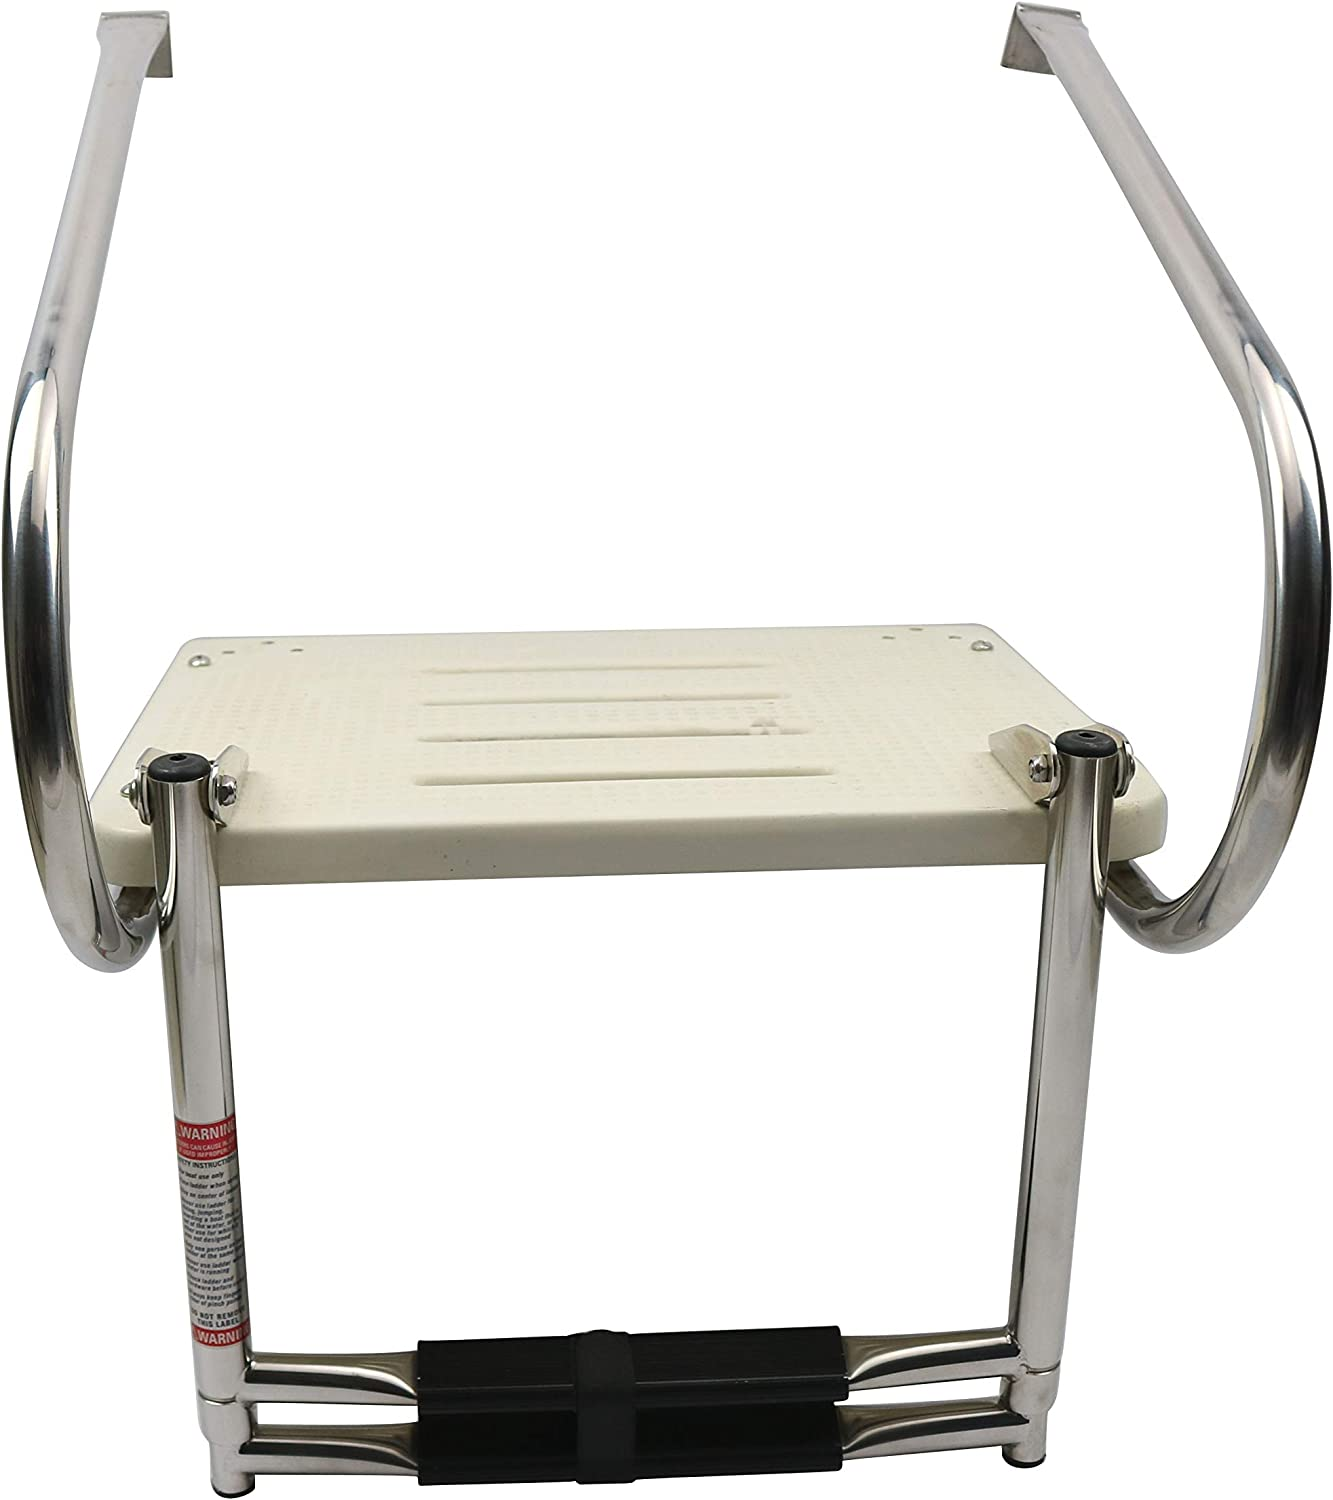 East Kay Boat in Board ABS Swim Platform with 2-Steps Telescopic Ladder